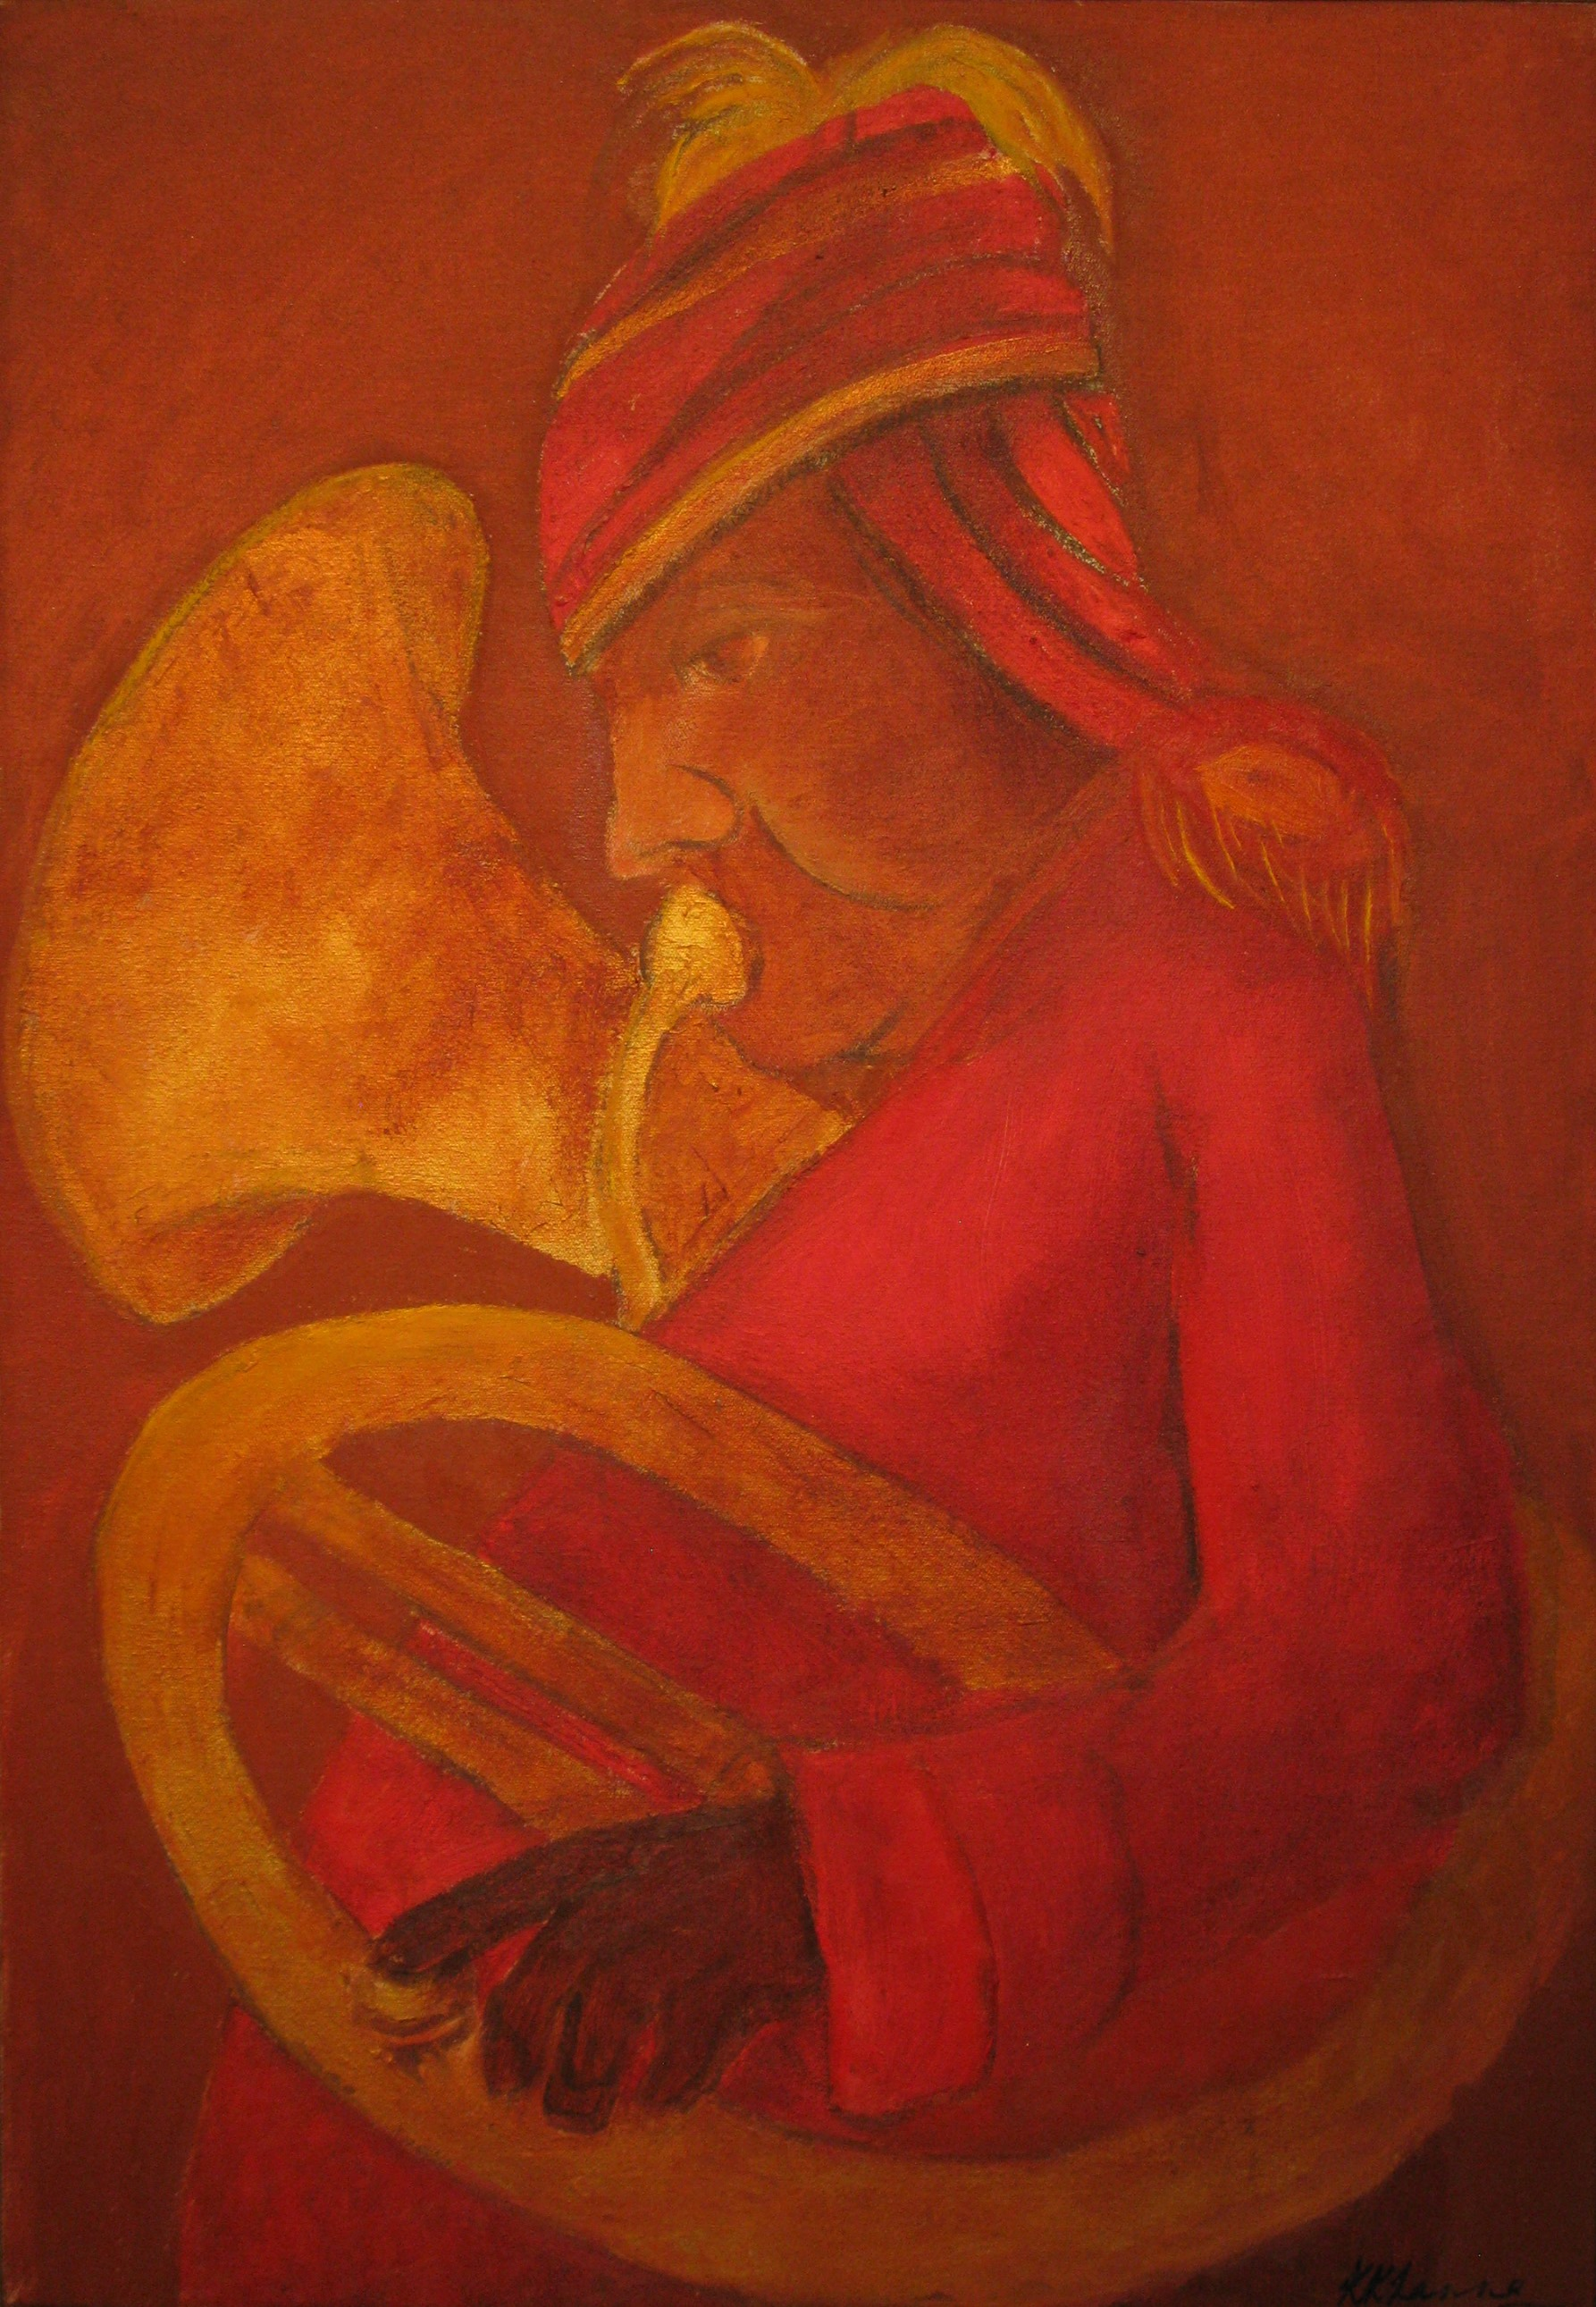 Untitled (Bandwalla with Trumpet), 2015. Oil on canvas, 60.9 x 38.1 cm. (24 x 15 in.)